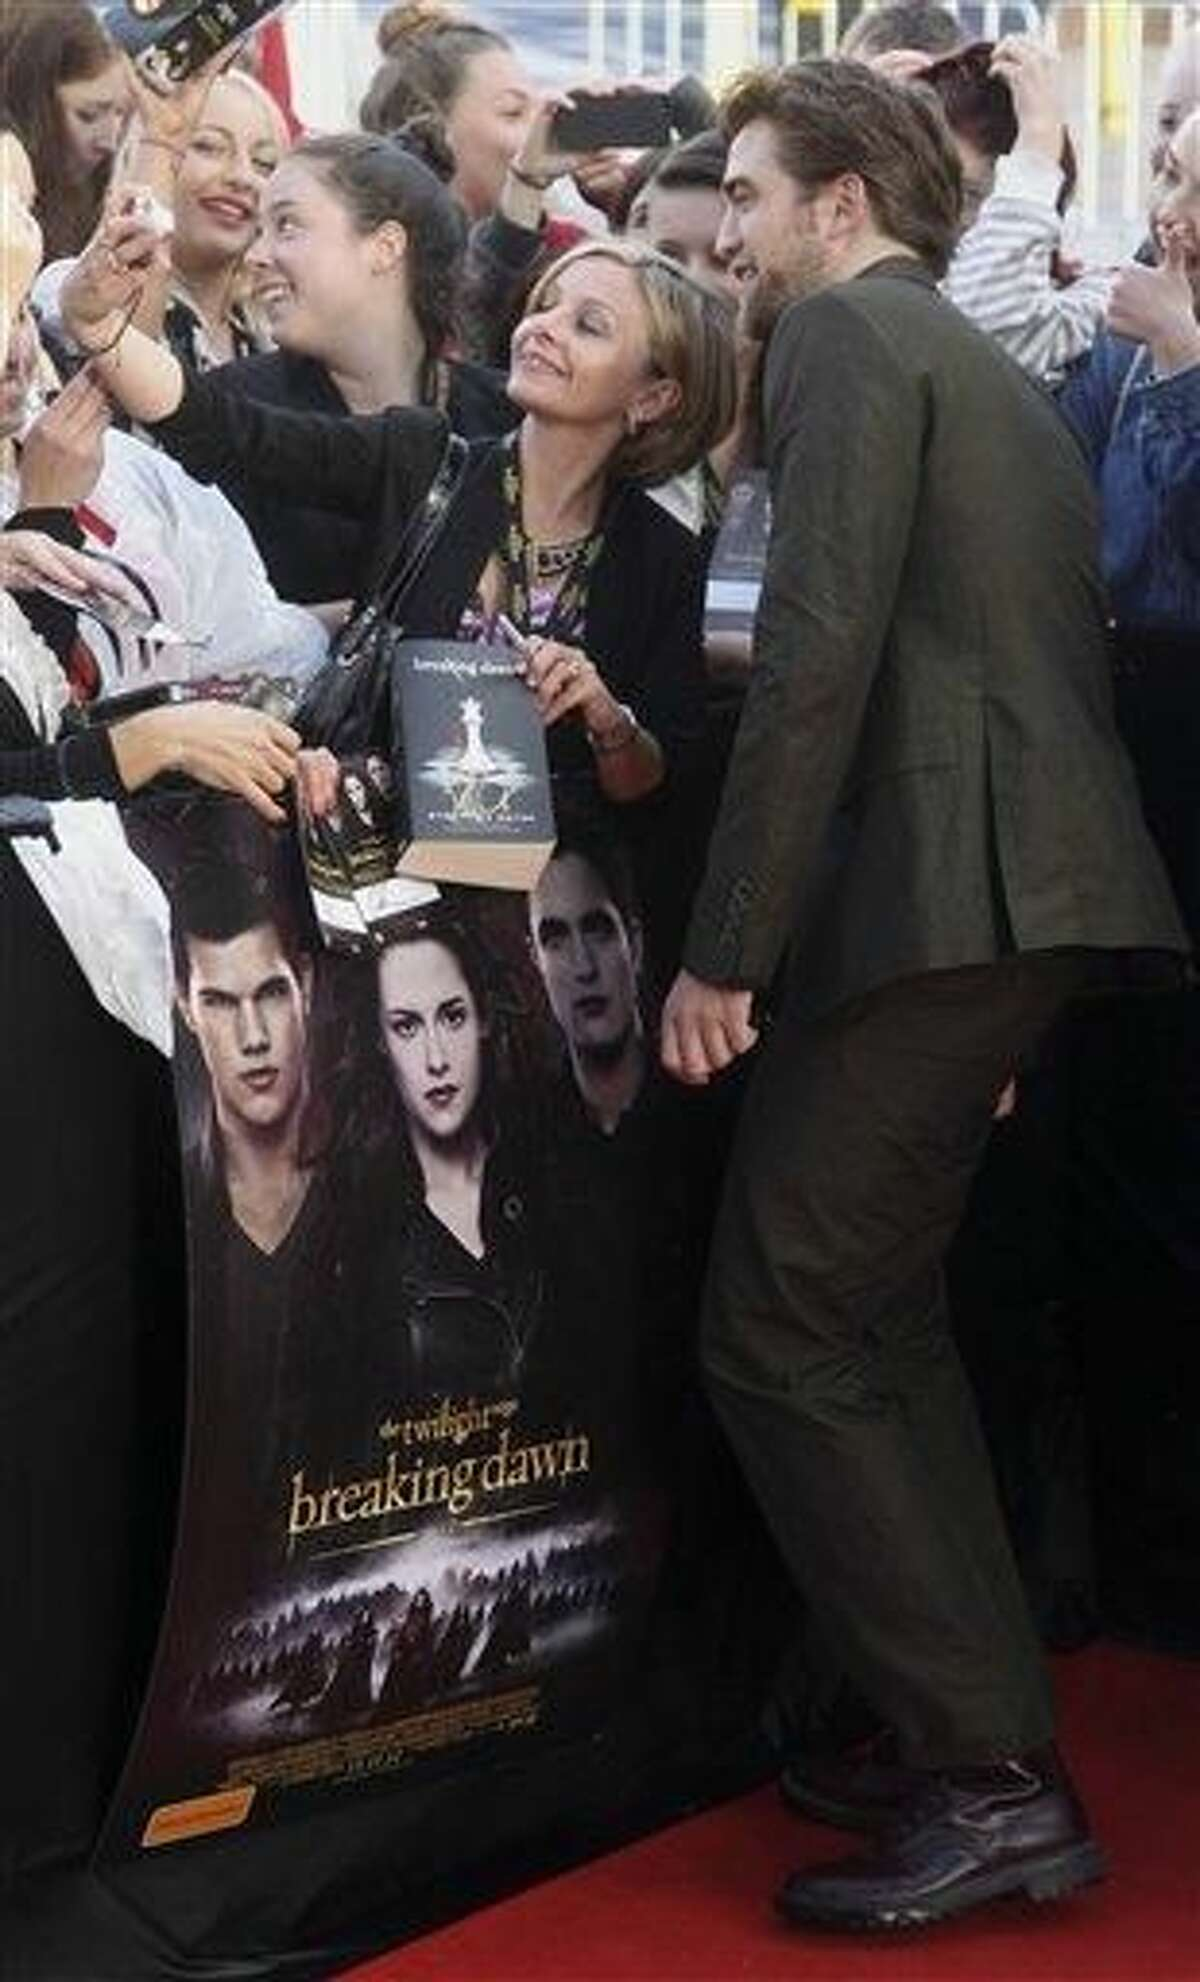 FILE - This Oct. 22, 2012 file photo shows British actor Robert Pattinson, right, having his photo taken with fans upon arrival for an exclusive fan event for the final chapter of the Twilight Saga